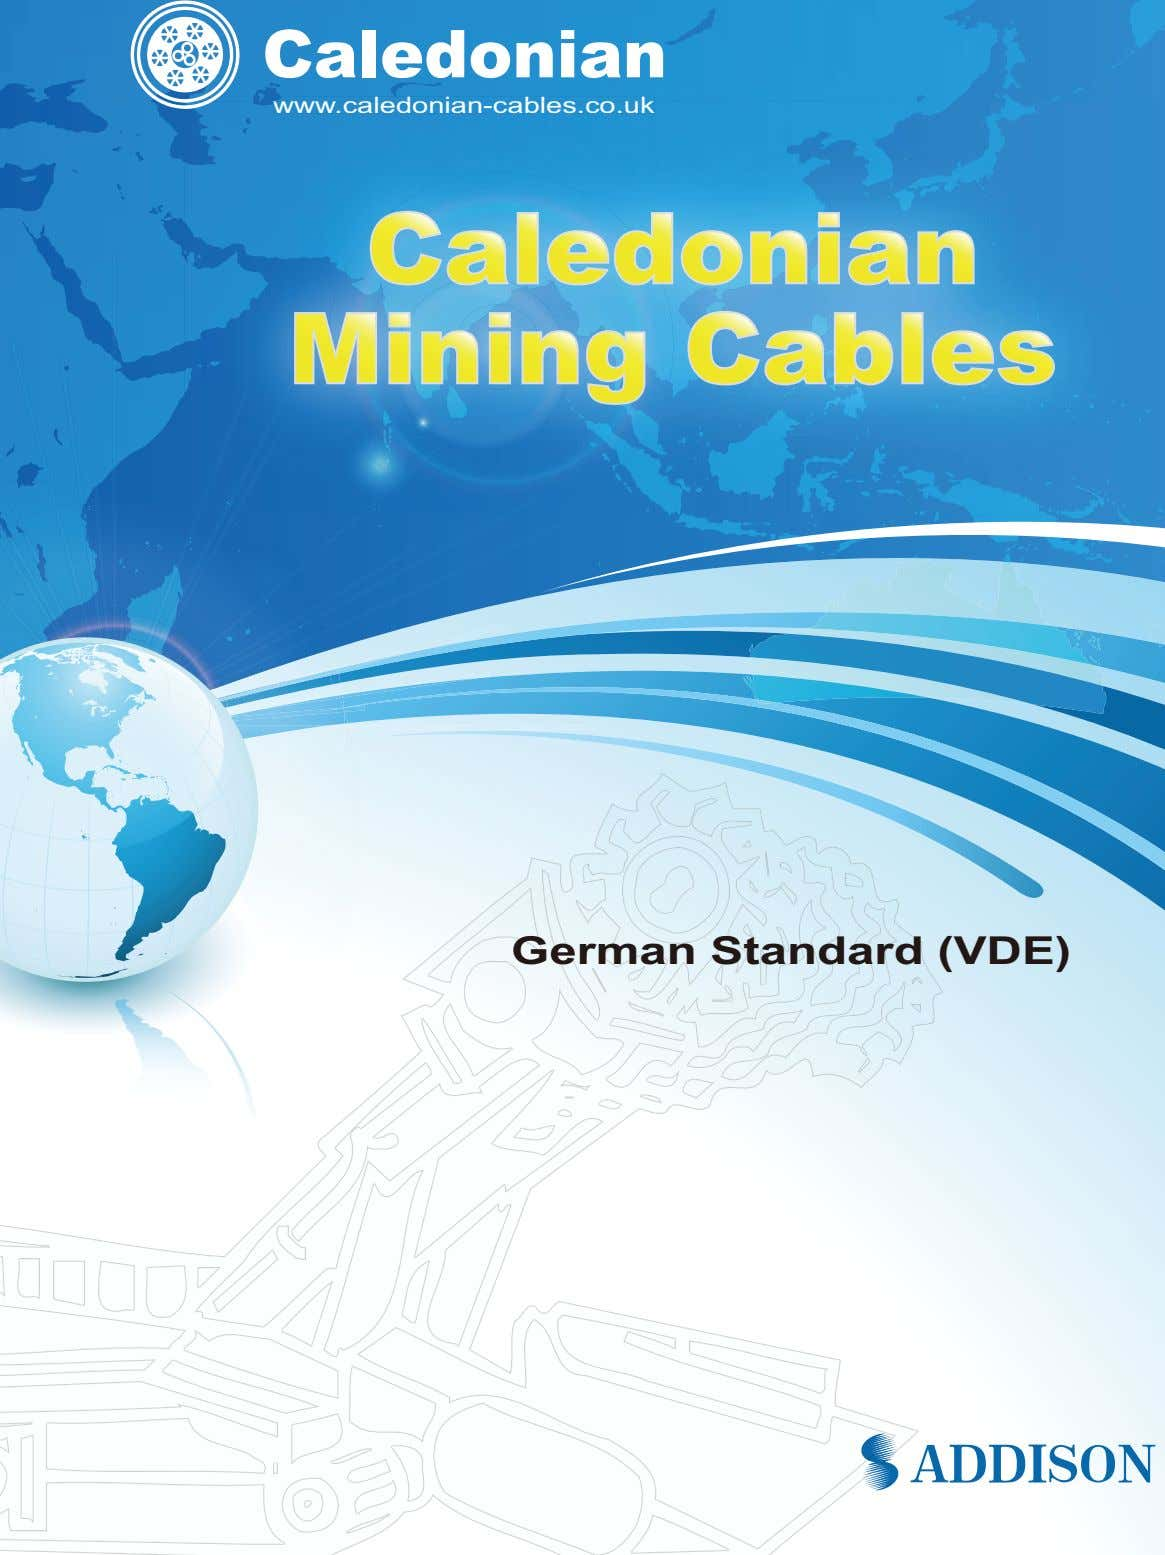 Caledonian www.caledonian-cables.co.uk www.caledonian-cables.co.uk German Standard (VDE)